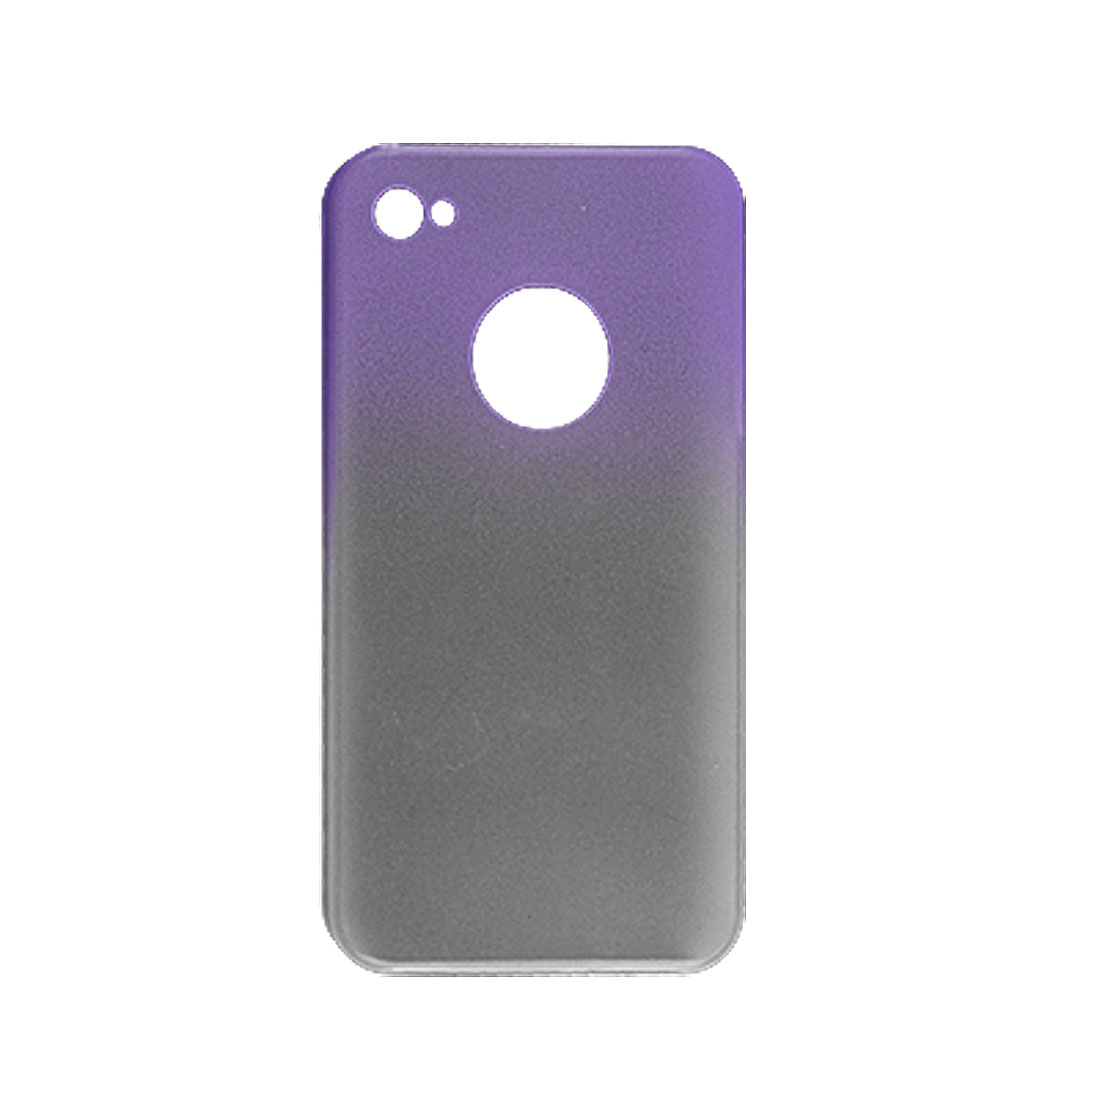 Rubberized Hard Plastic Gradient Color Back Case for iPhone 4 4G